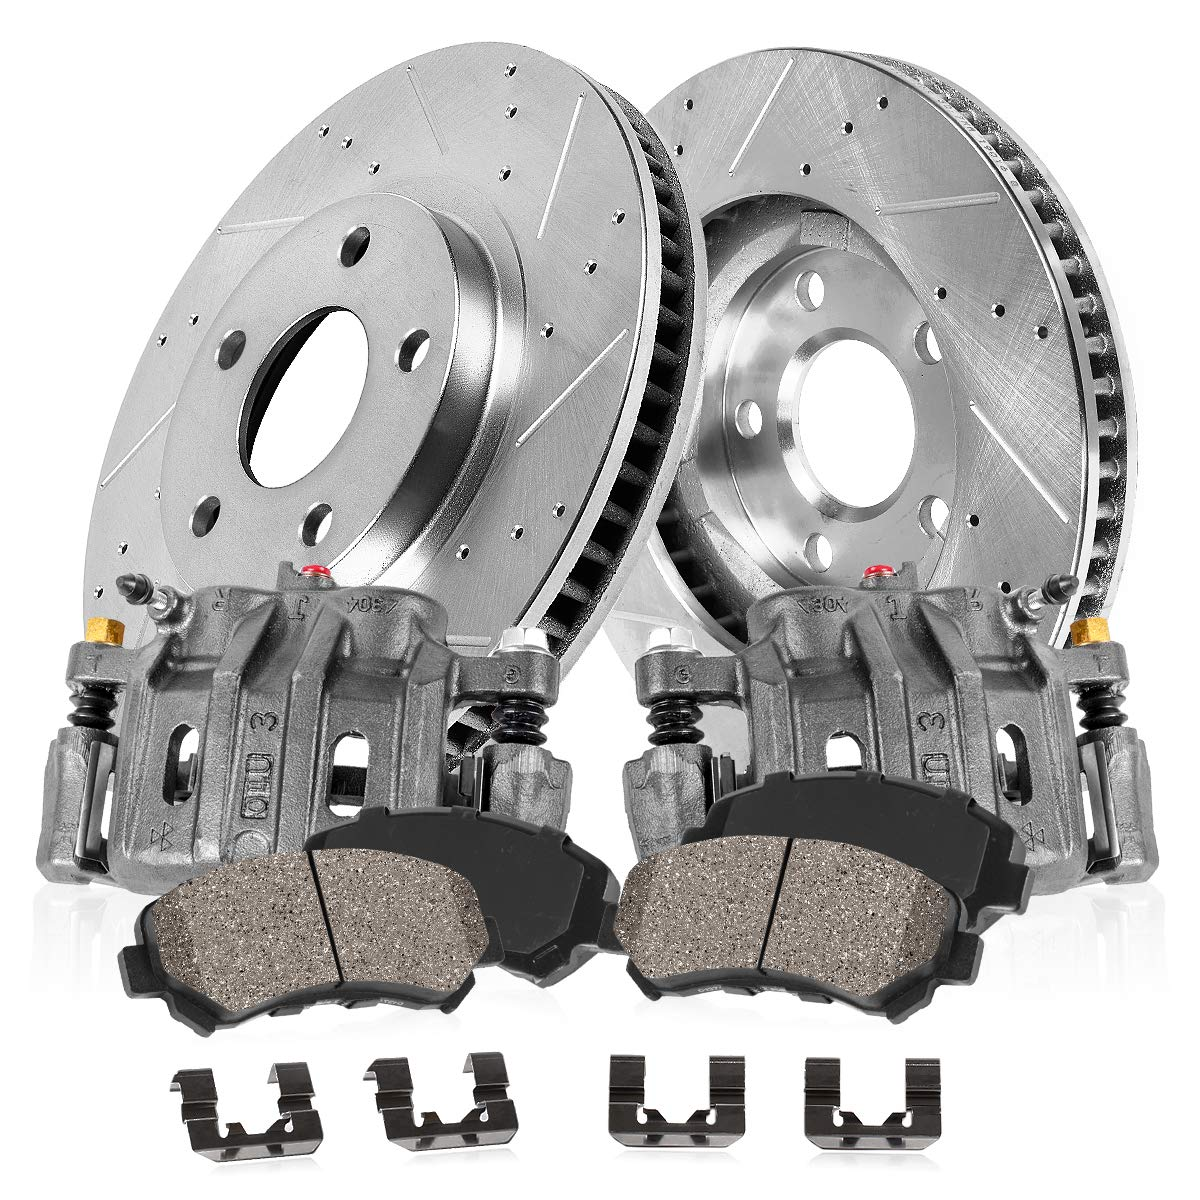 CCK11632 FRONT OE [2] Remanufactured Calipers + [2] Drilled/Slotted Rotors + Quiet Low Dust [4] Ceramic Pads Kit